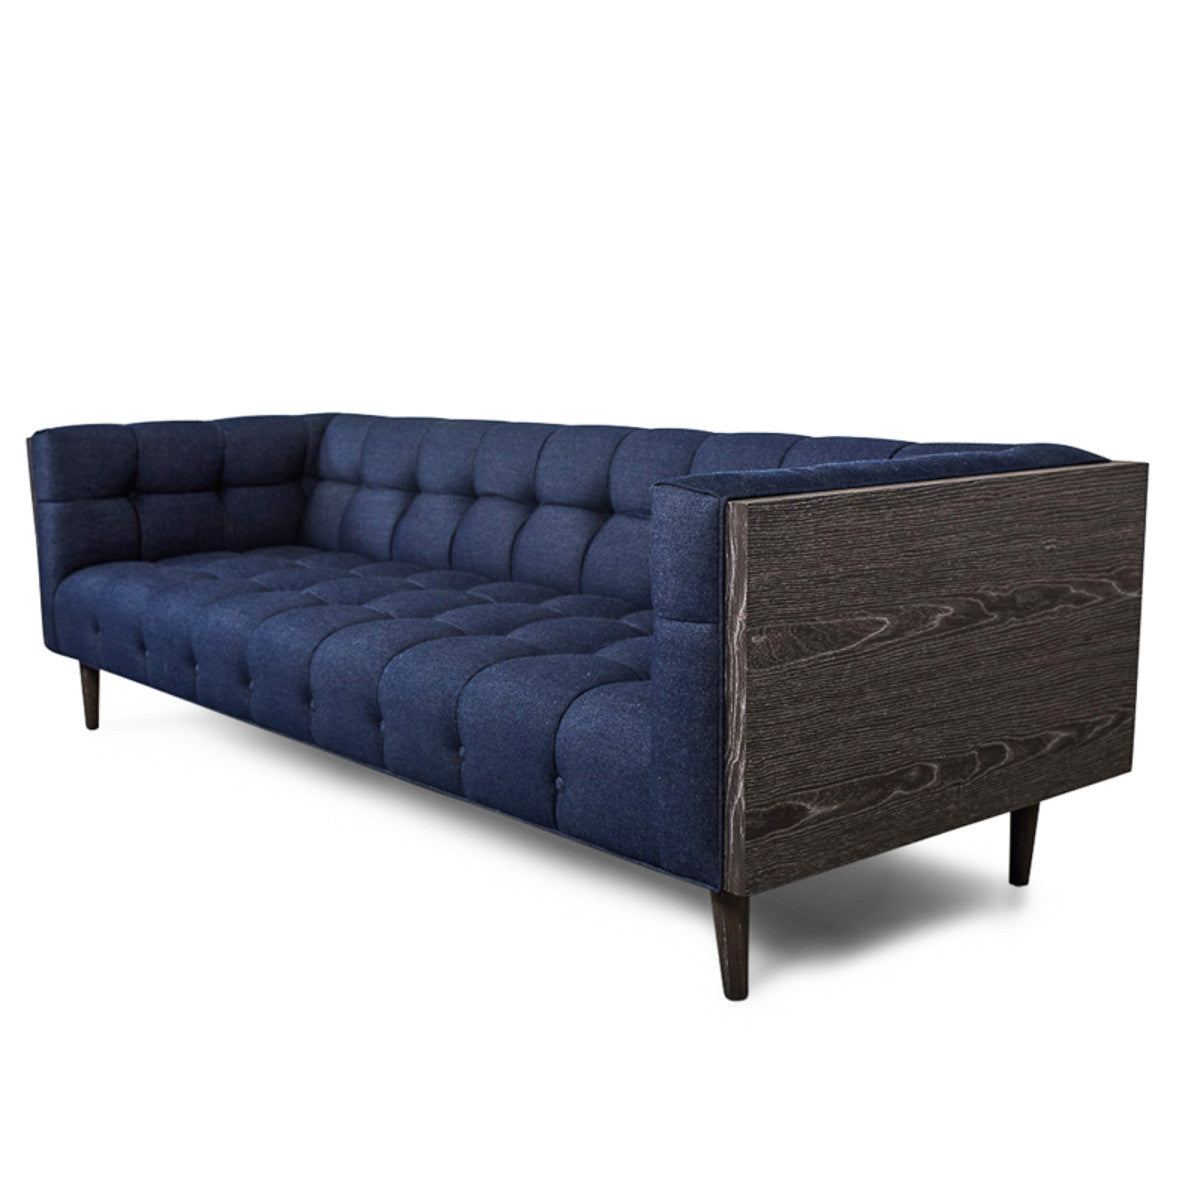 Charmant Mid Century Sofa In Dark Navy Raw Denim